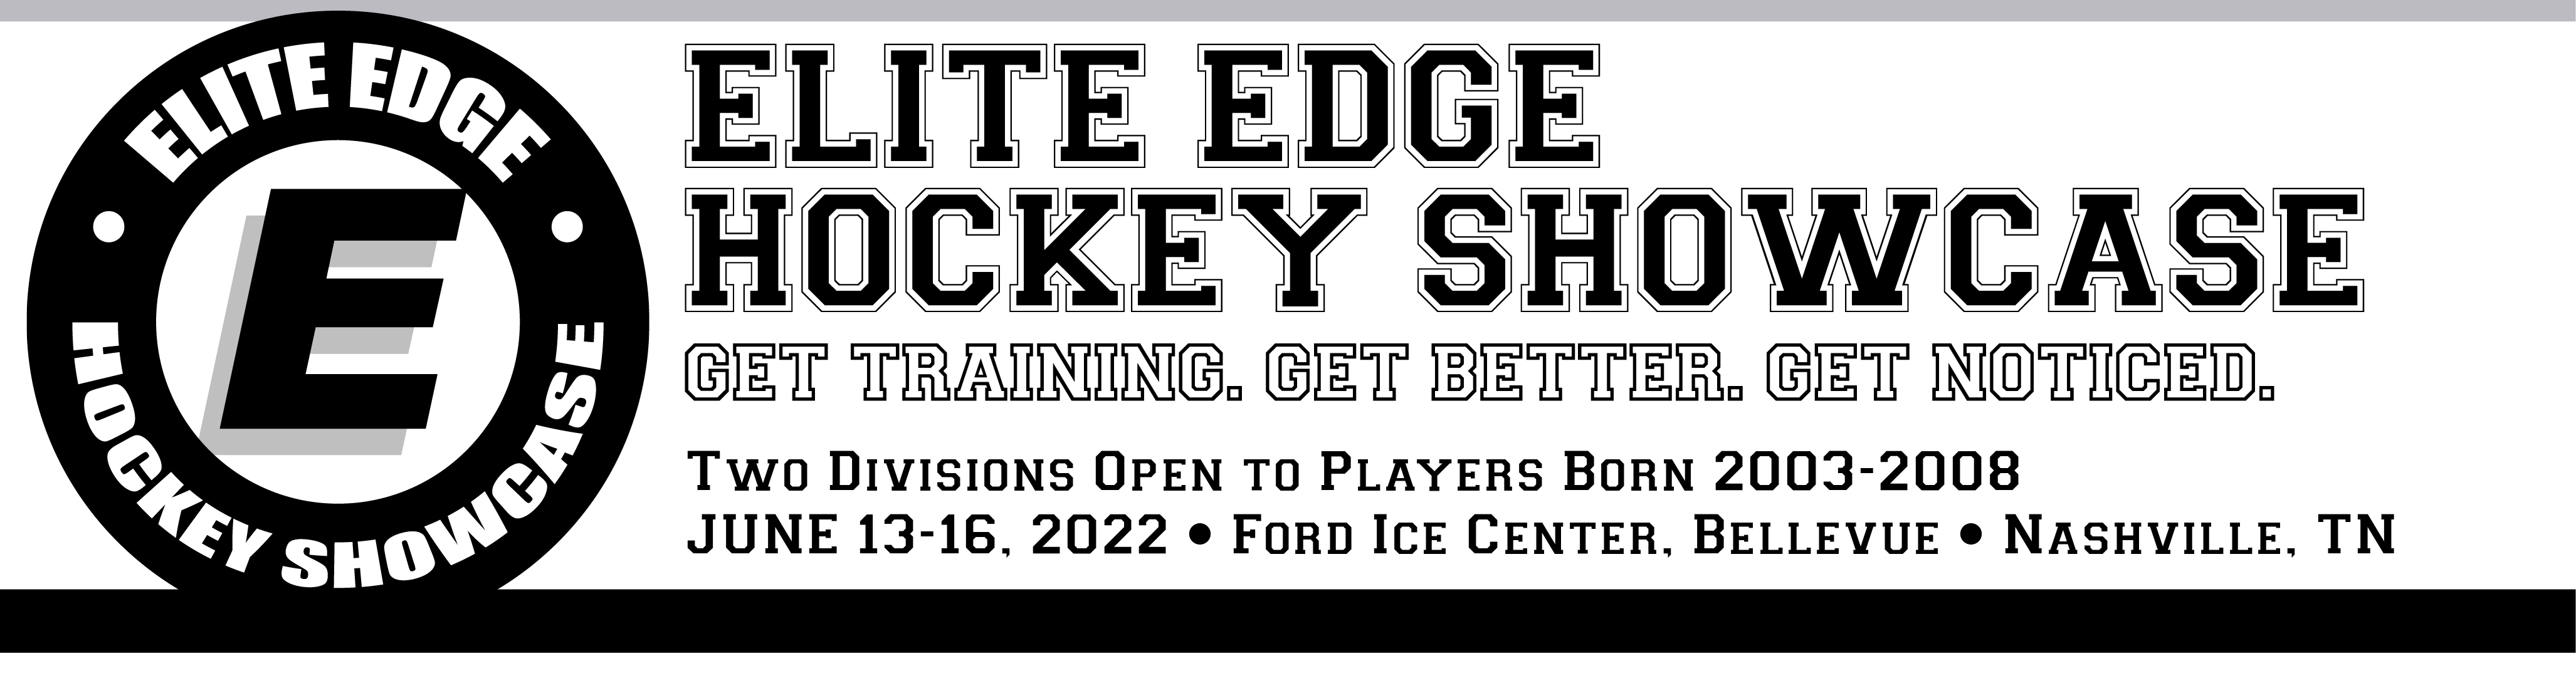 Elite Edge Hockey